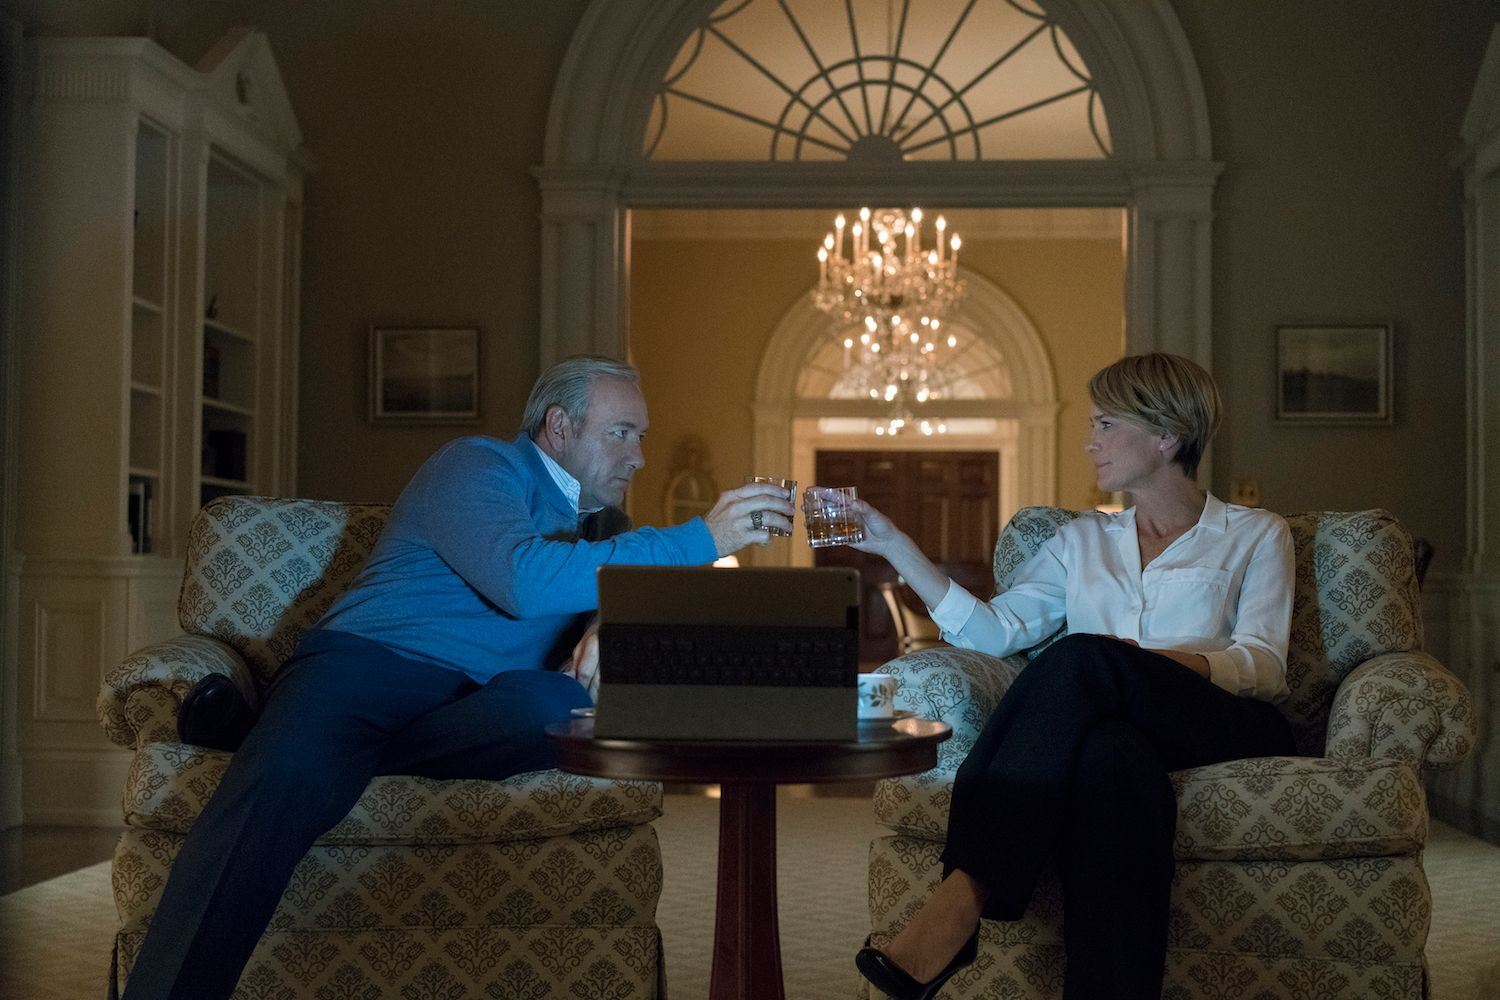 house of cards season 5 explained: spoiler review | collider